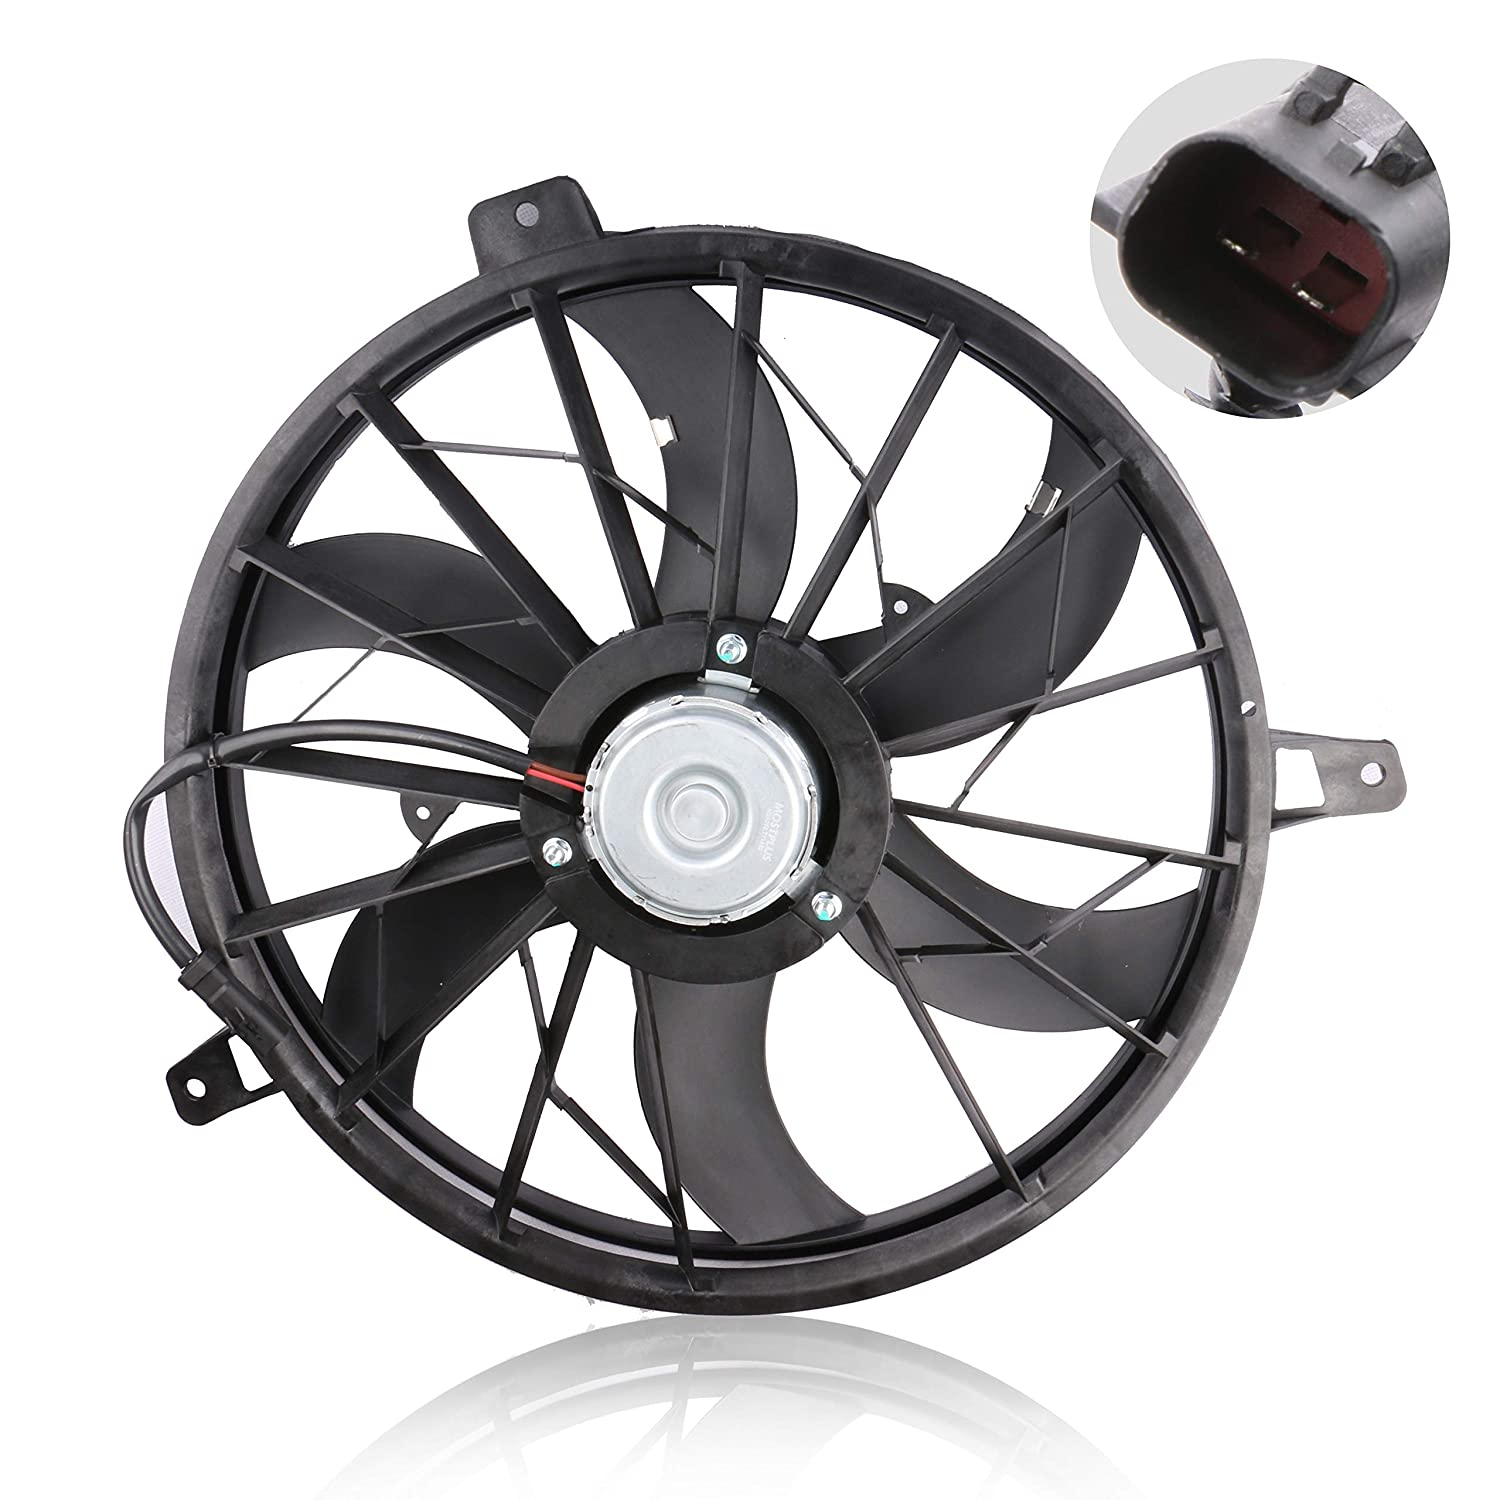 MOSTPLUS Front Radiator Cooling Fan Assembly Replace for Jeep Grand Cherokee 4.0L 4.7L 1999-2003 Replaces 674-00389 52079528AB